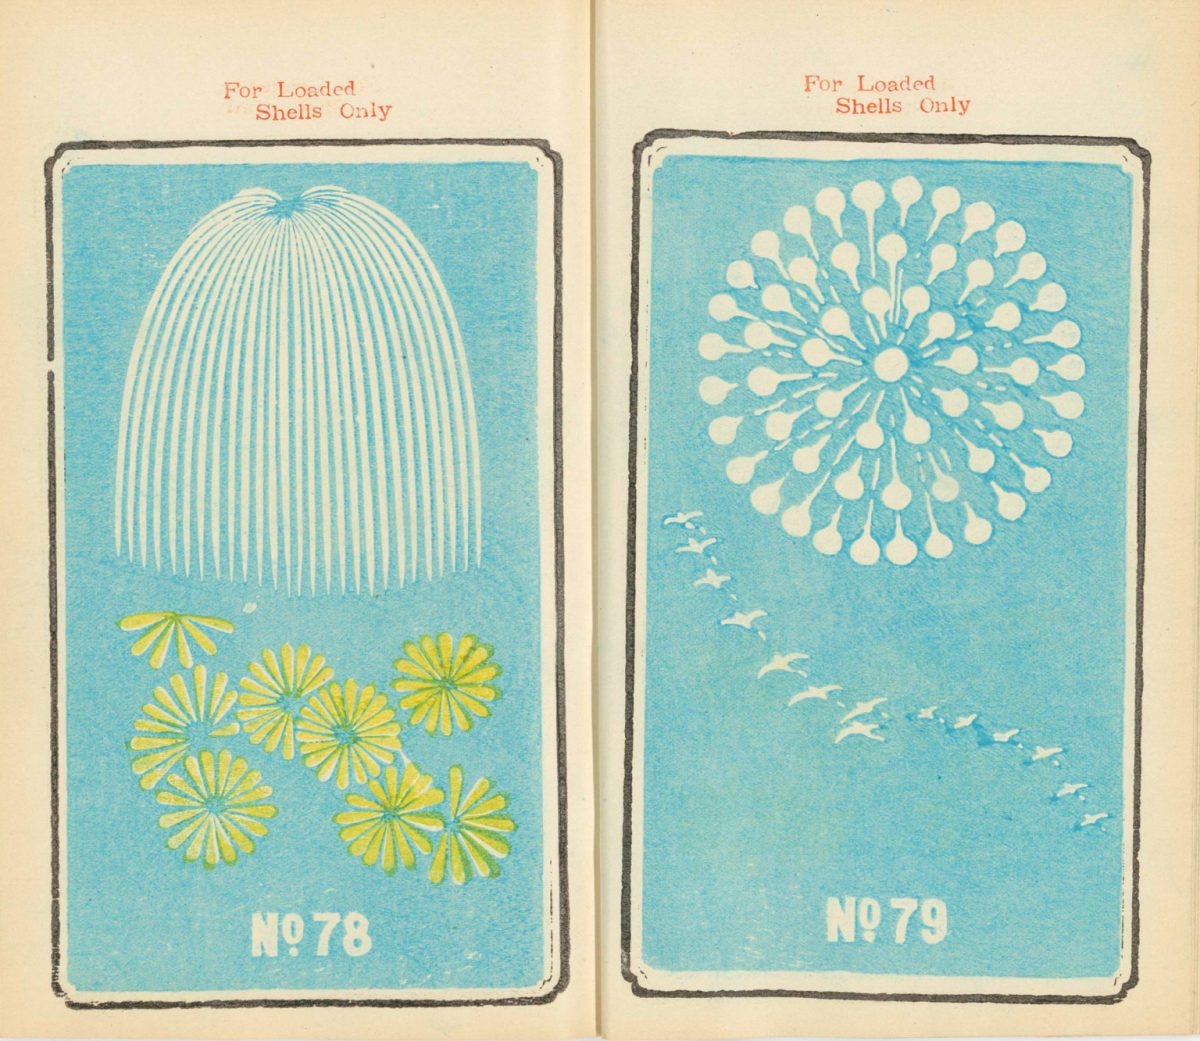 19th Century Firework illustrations from Japan